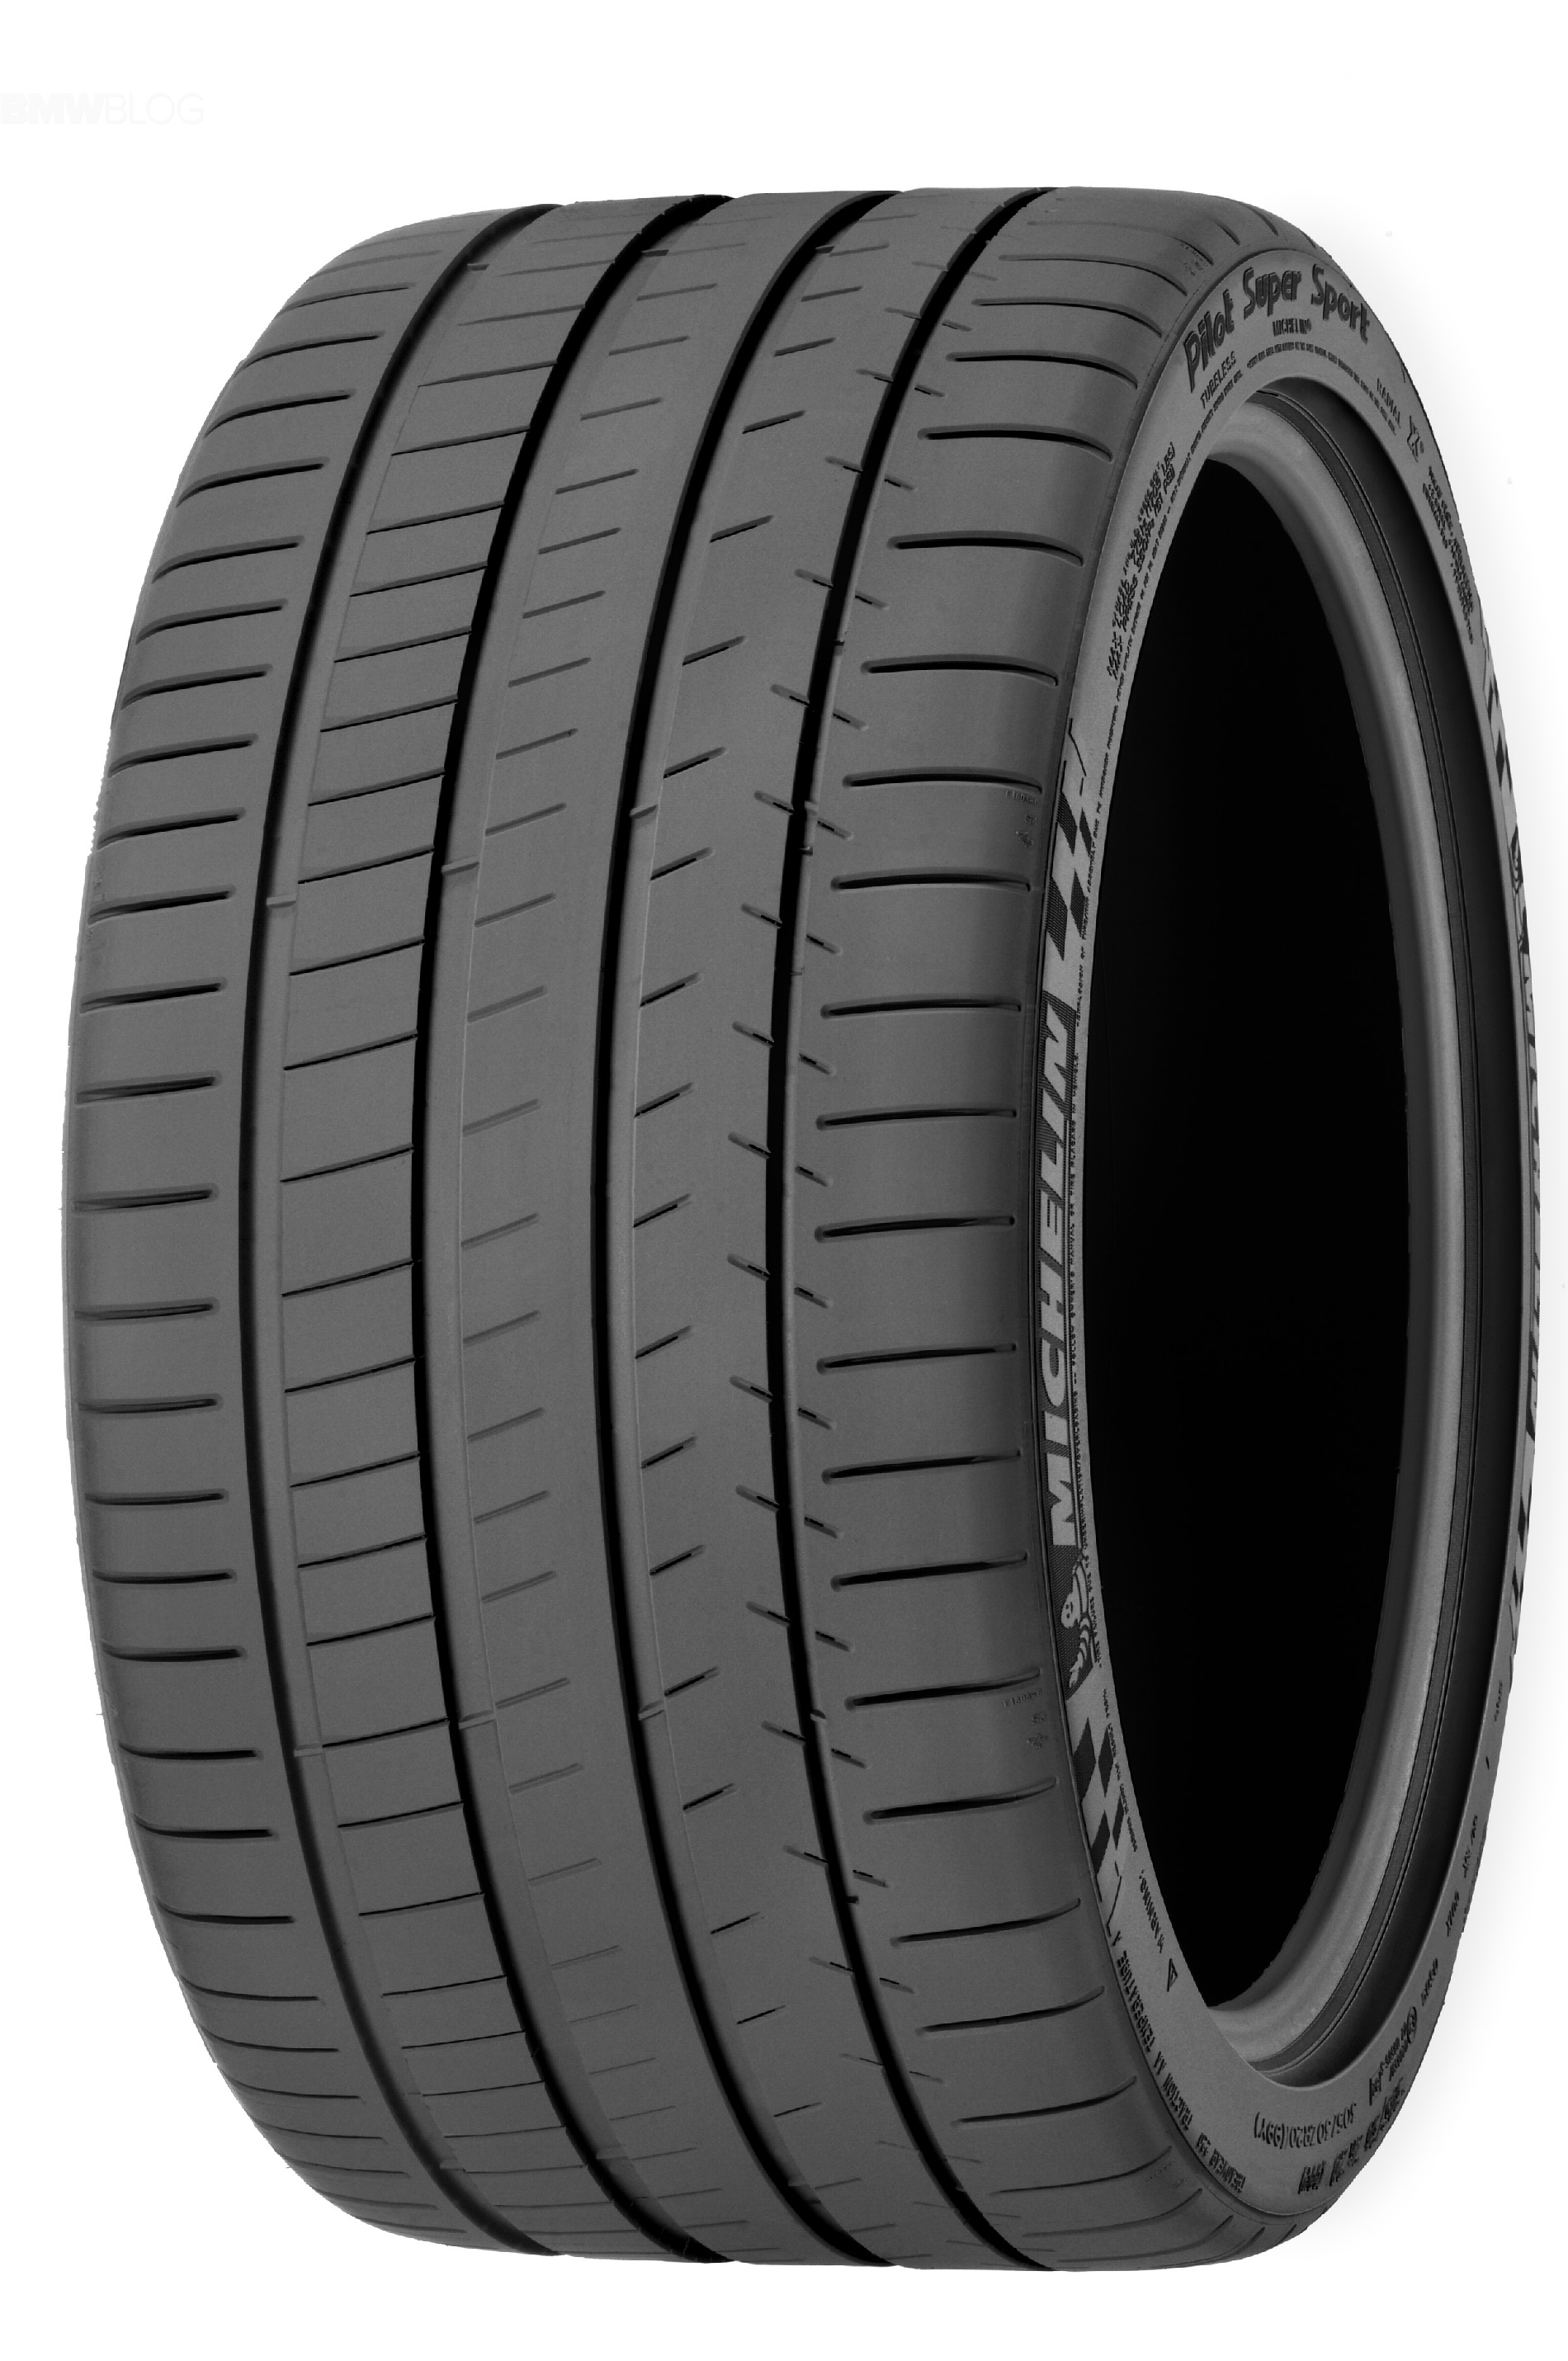 Летняя шина Michelin Pilot Super Sport 245/40 R20 93Y